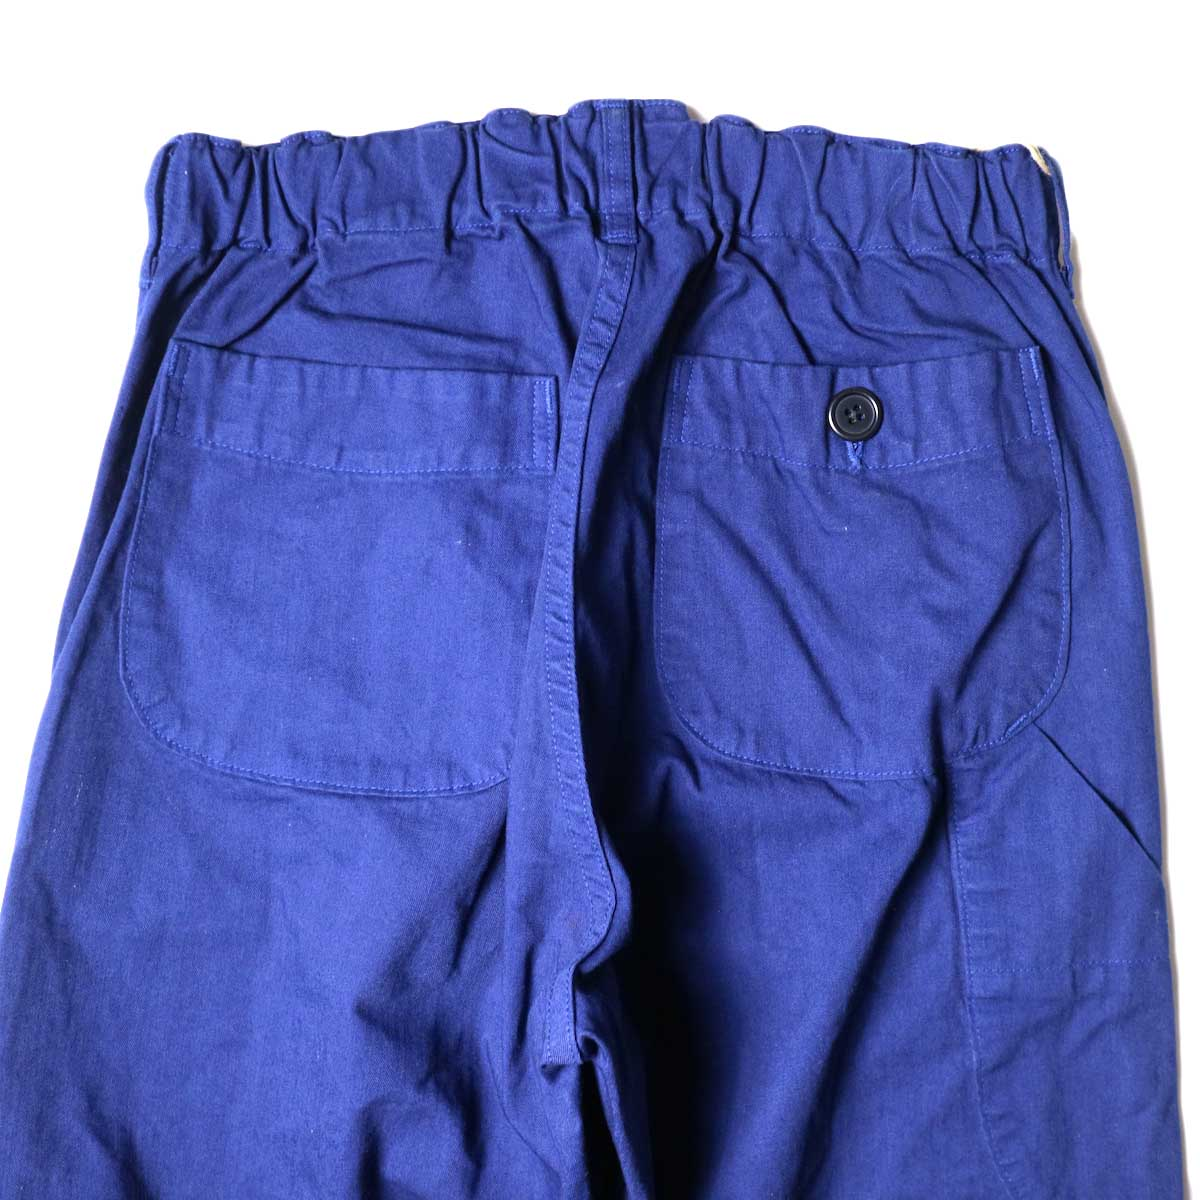 orSlow / French Work Pants (Blue) バッグポケット